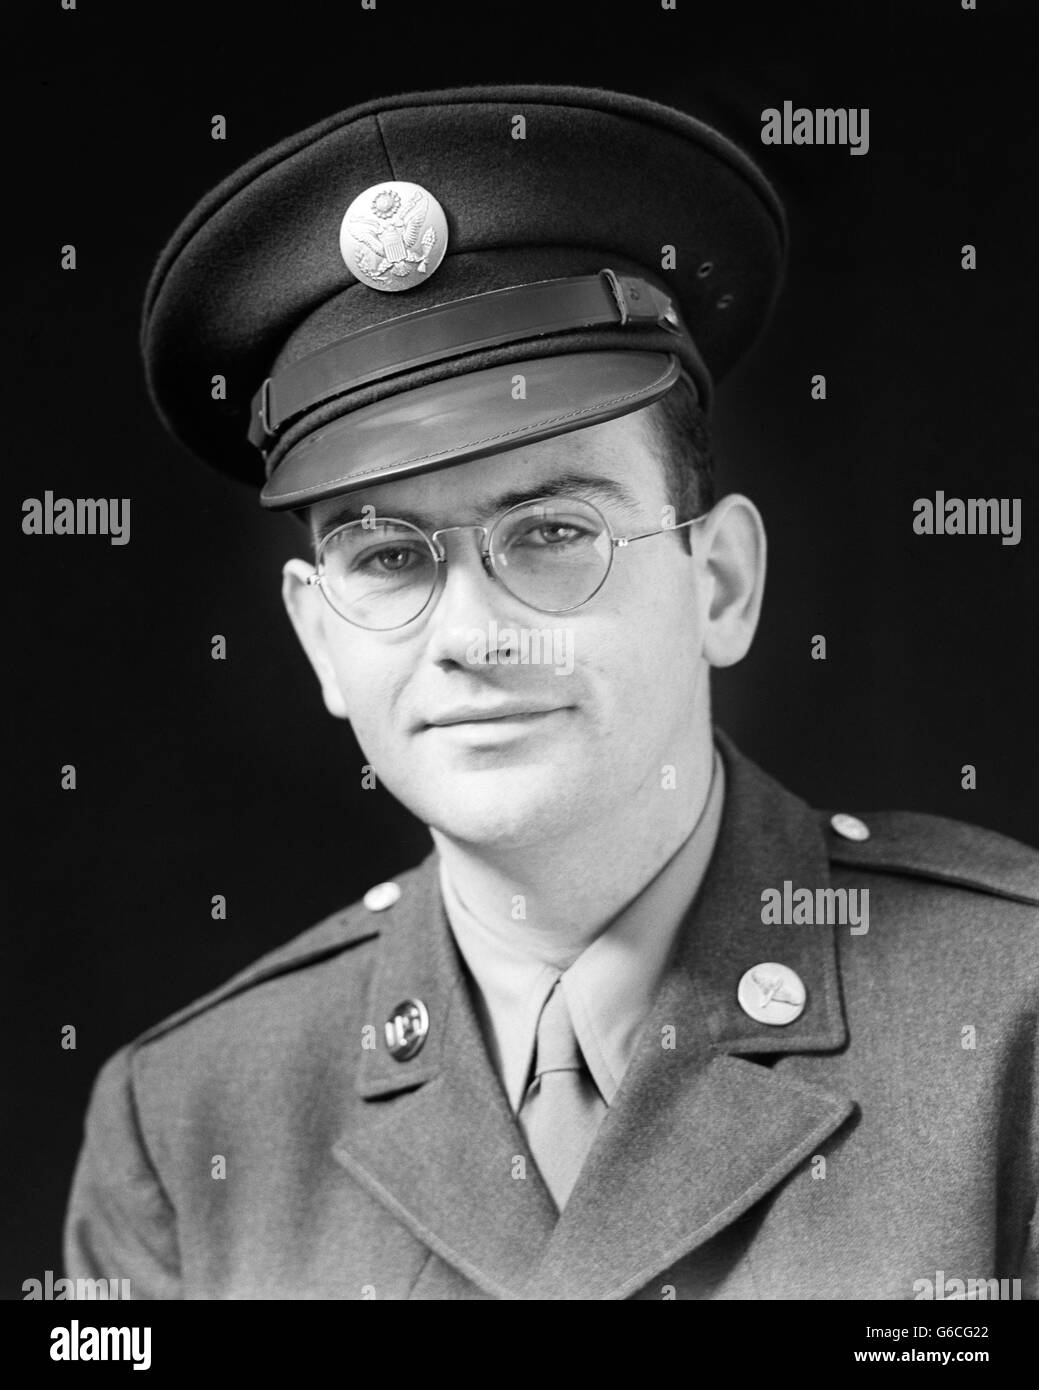 1940s PORTRAIT OF MAN WORLD WAR II ENLISTED SOLDIER WEARING ARMY UNIFORM LOOKING AT CAMERA - Stock Image